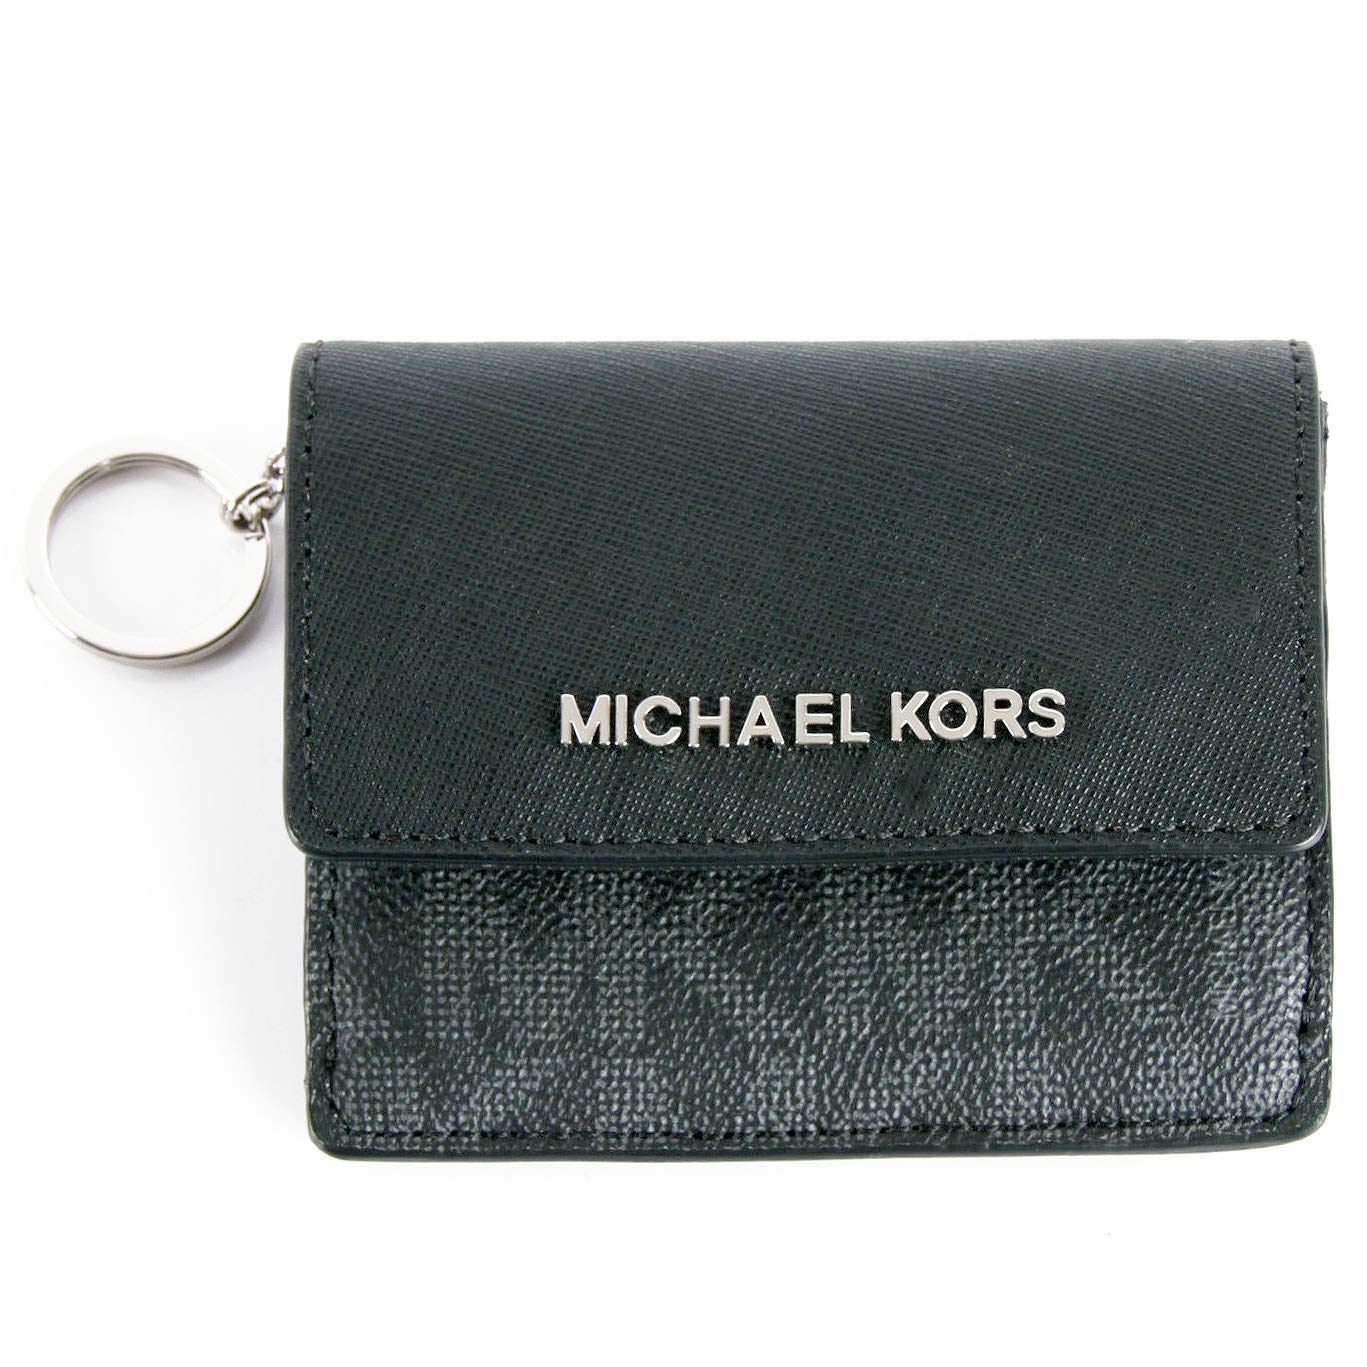 002b905f9d81 Top3: Michael Kors Jet Travel Credit Card Case ID Wallet with Key Ring